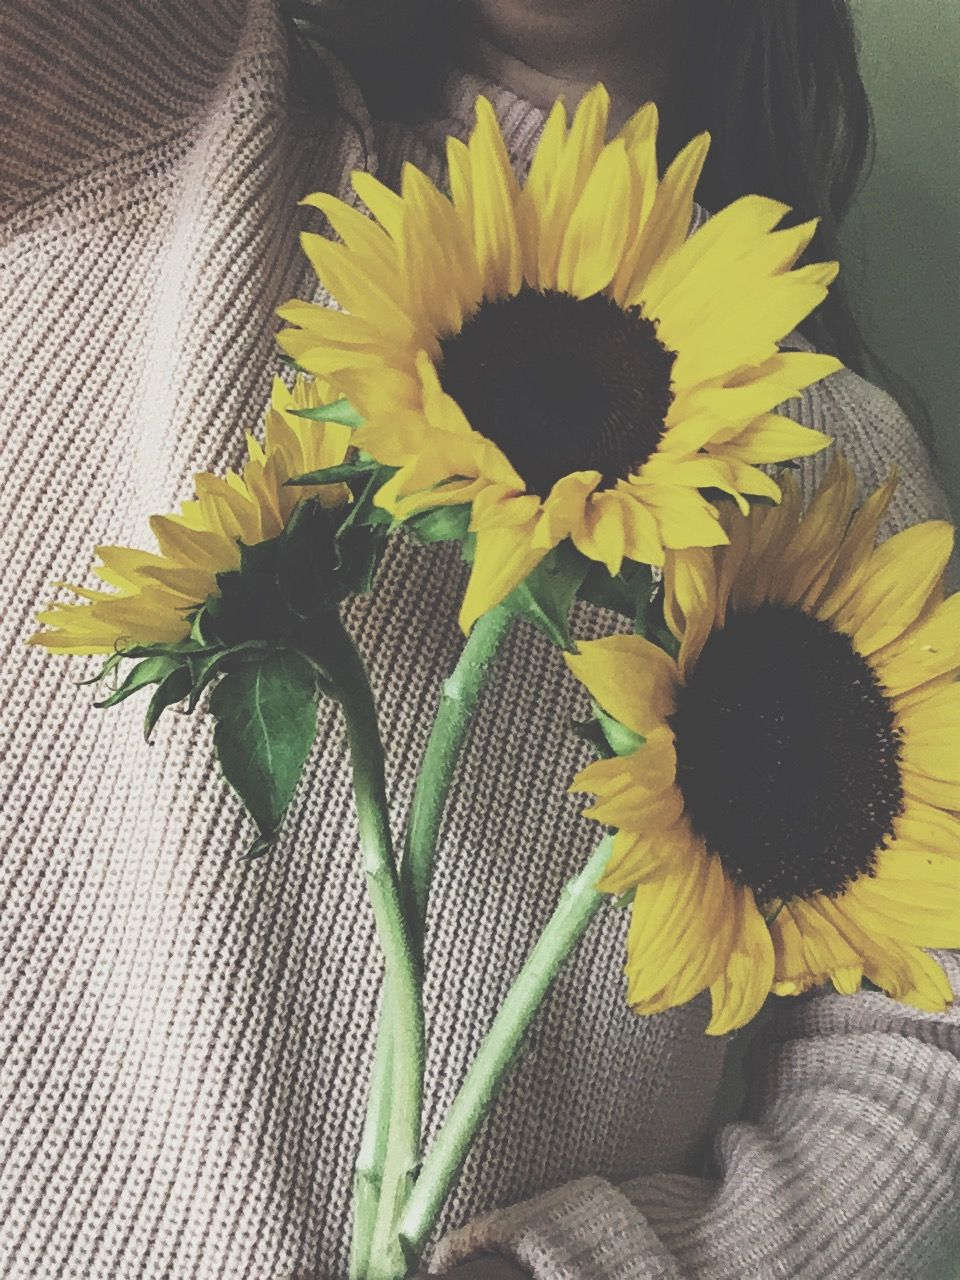 Girasoles Vintage Tumblr Pinterest Girasoles Fotos Girasoles